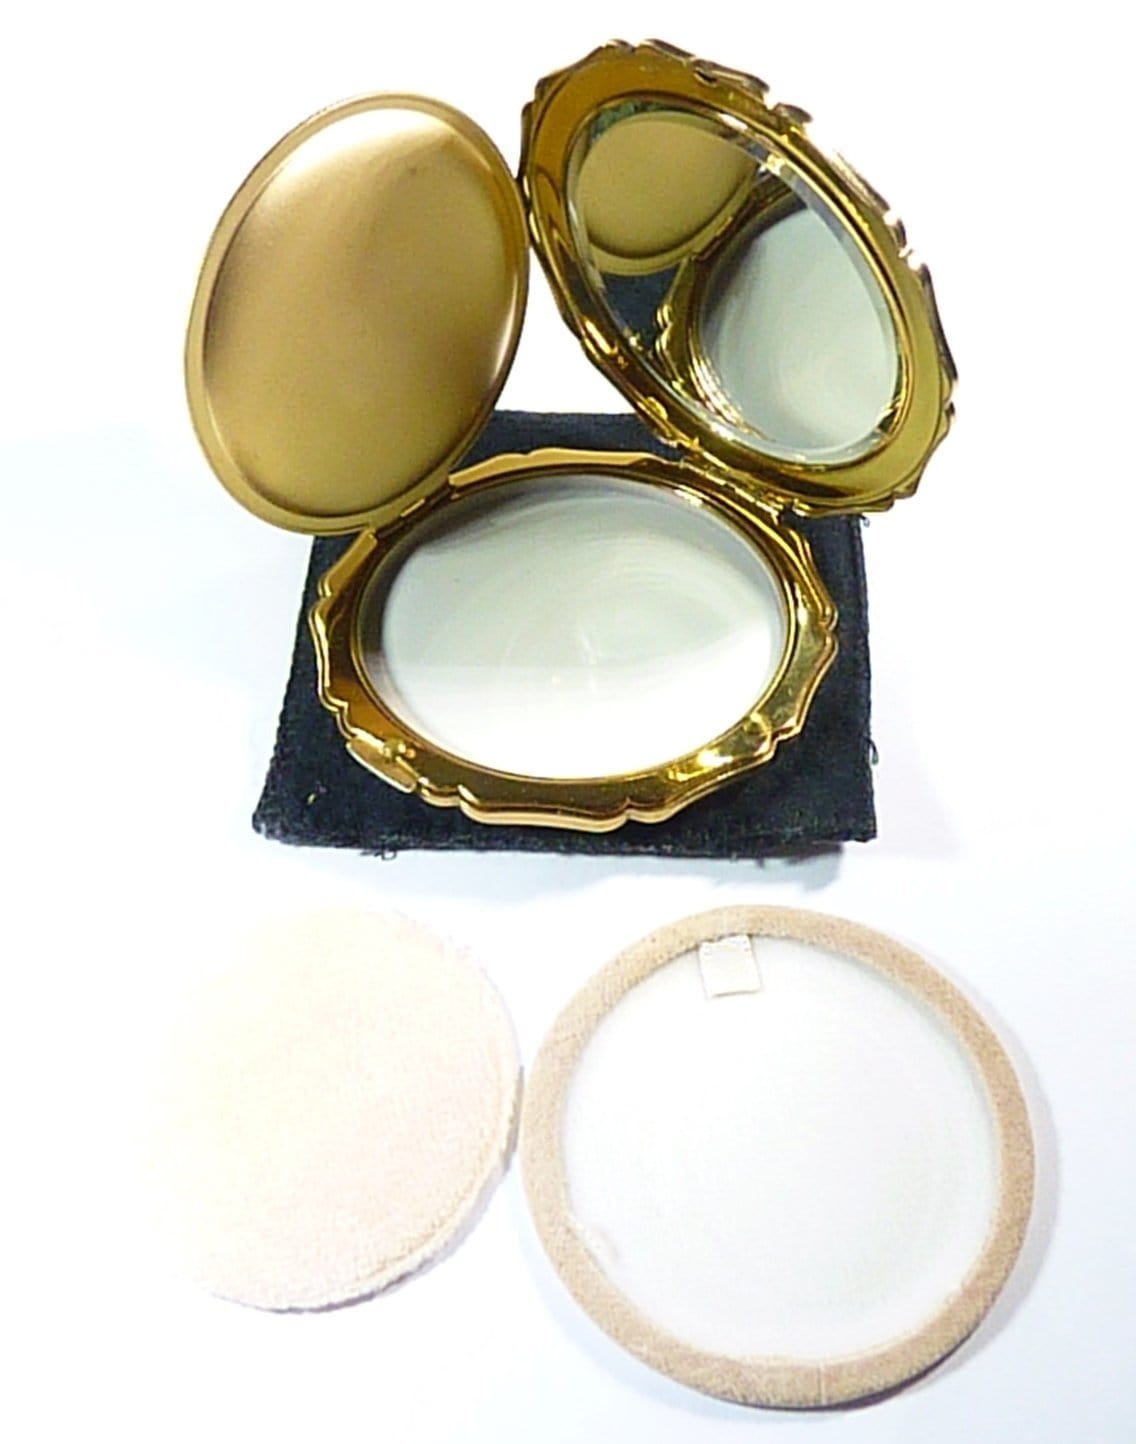 powder compact case with mirror